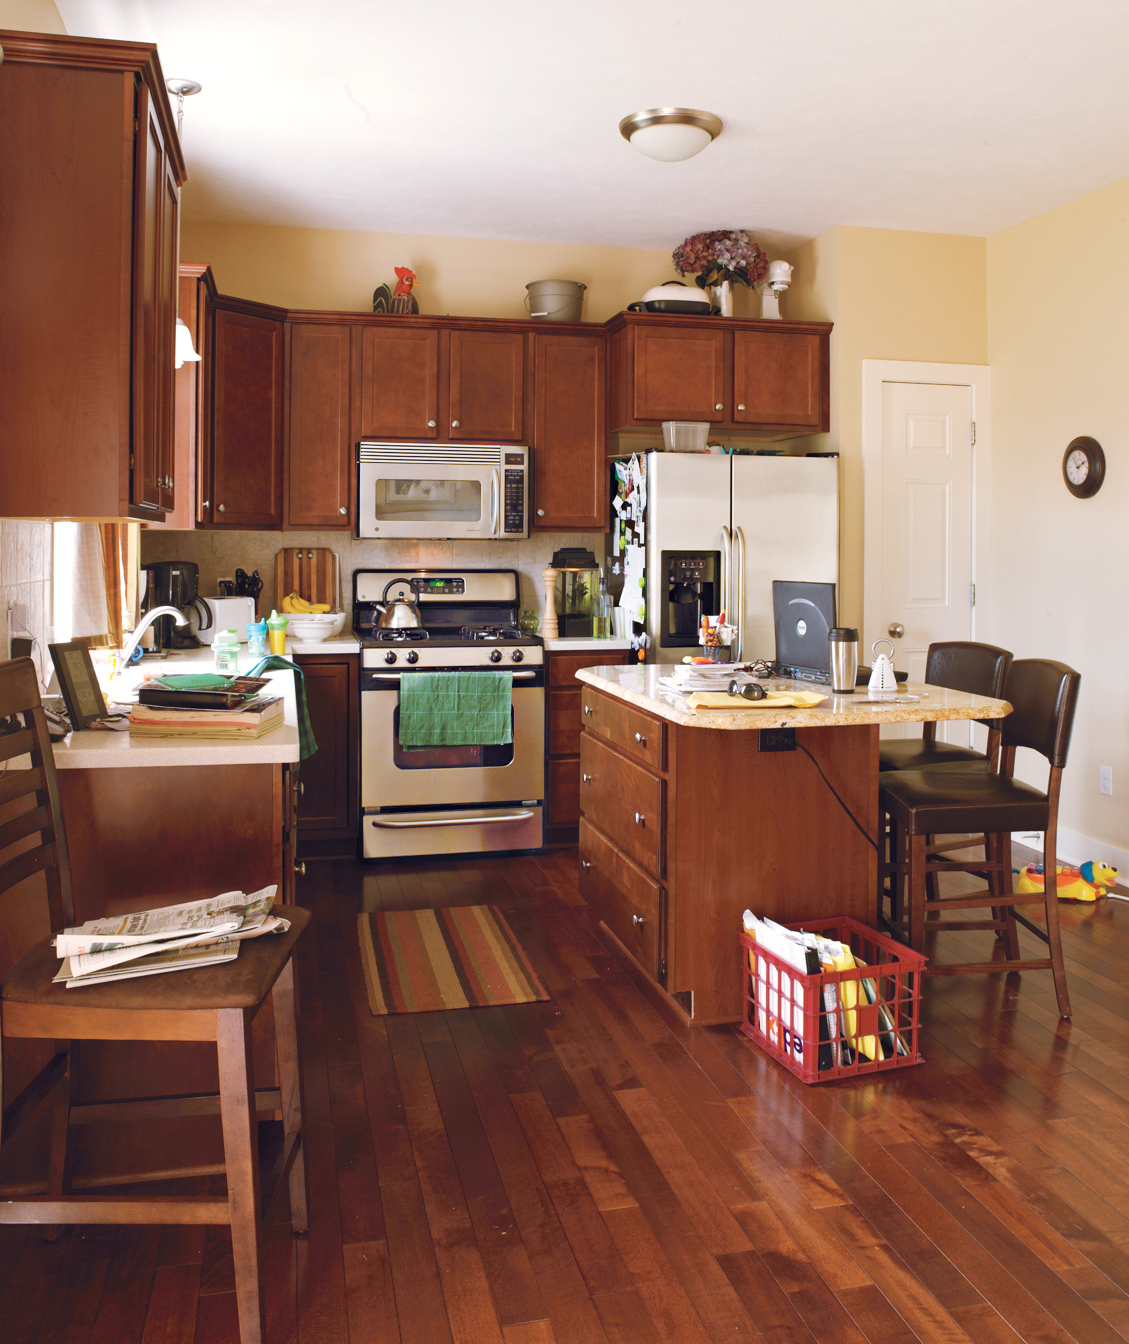 A cluttered kitchen